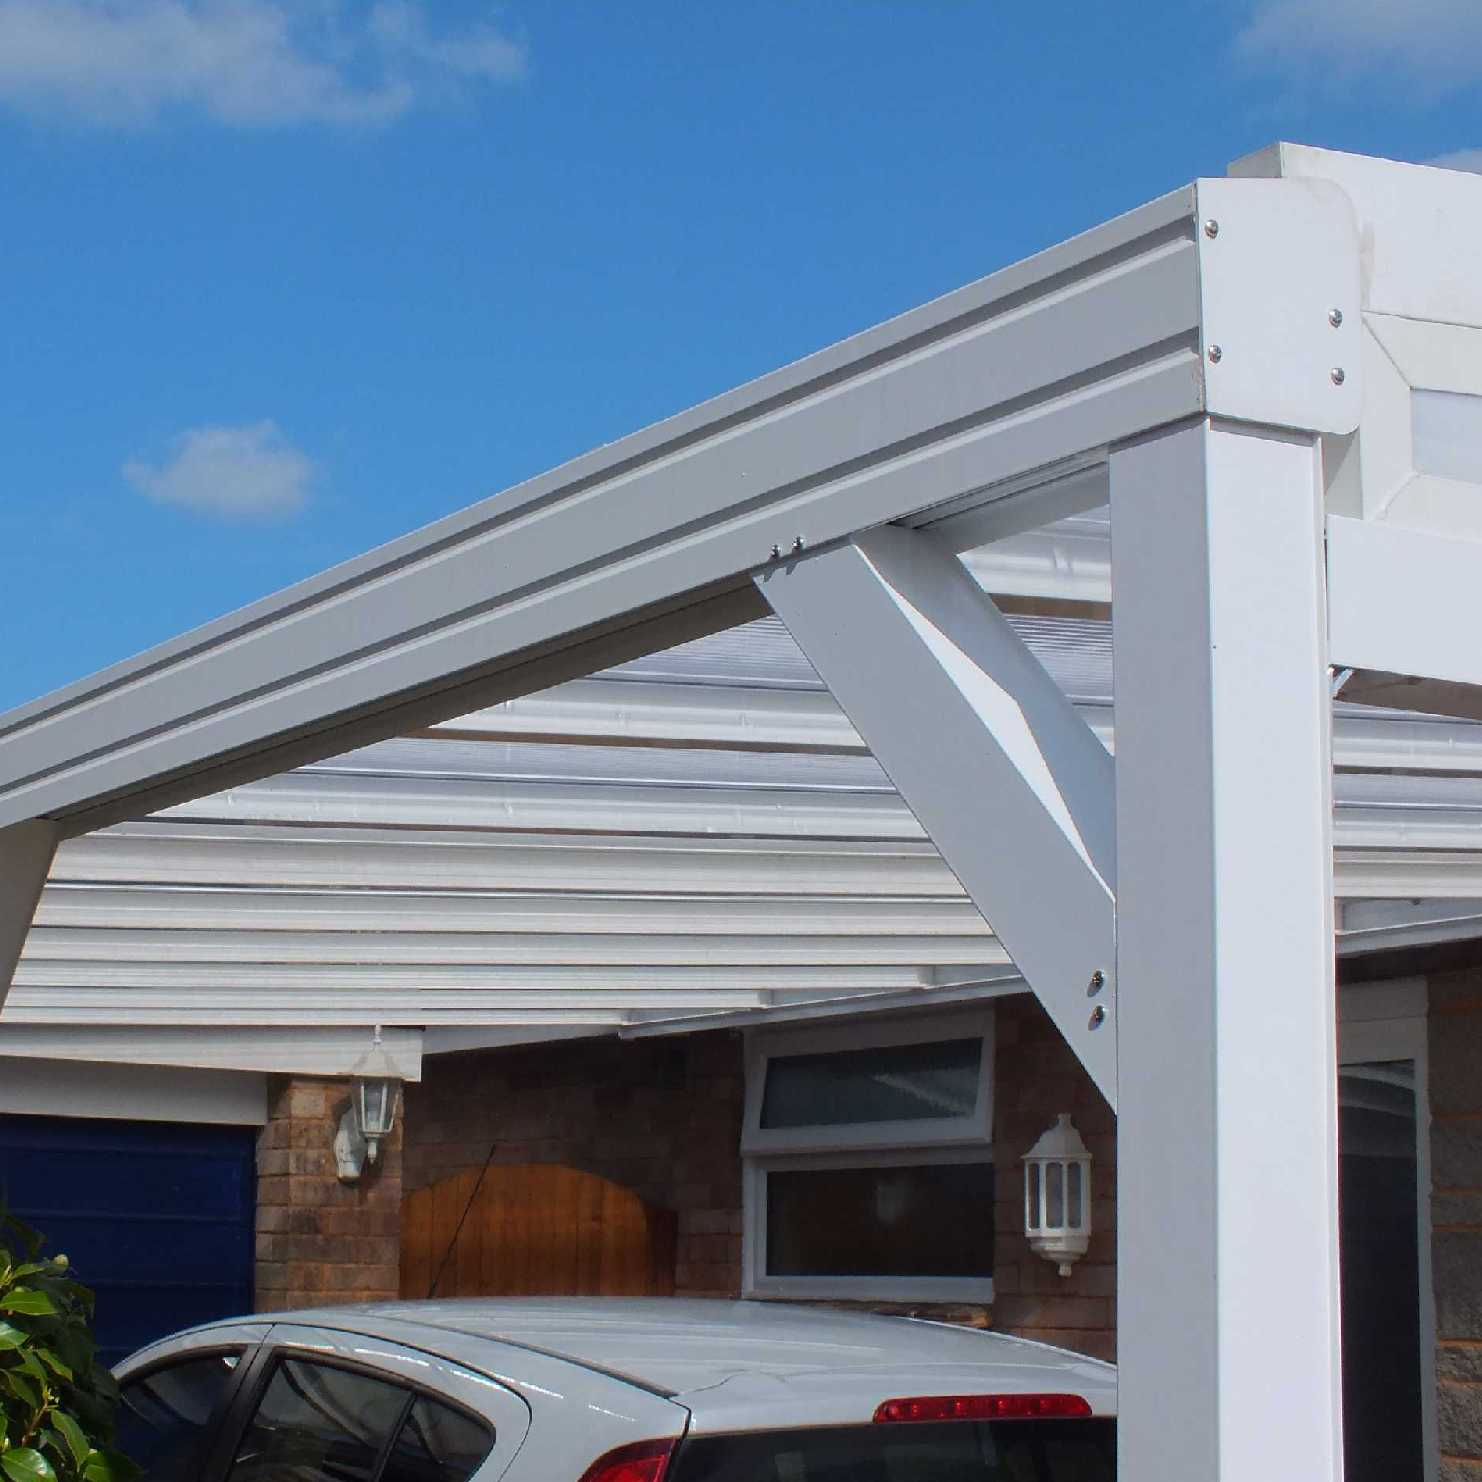 Buy Omega Smart White Lean-To Canopy with 16mm Polycarbonate Glazing - 9.2m (W) x 3.5m (P), (5) Supporting Posts online today